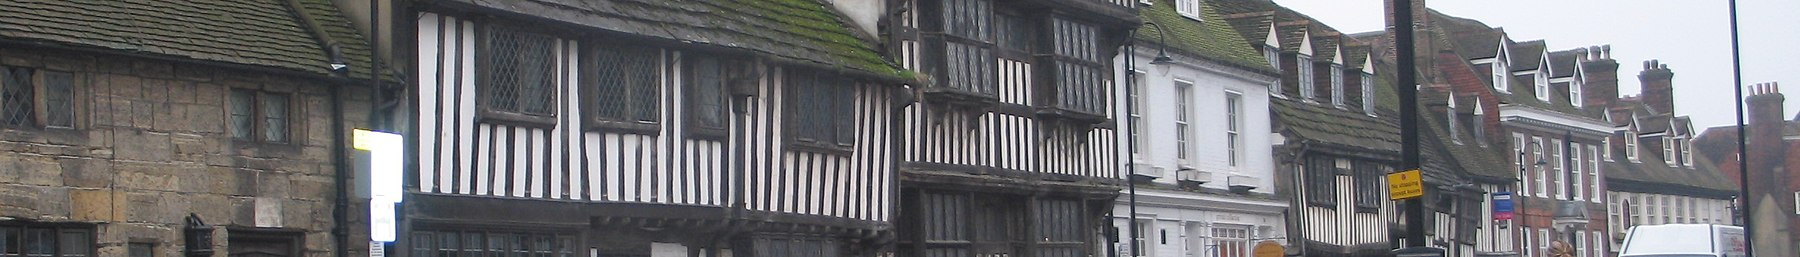 a row of 14th century timber framed buildings on the High Street